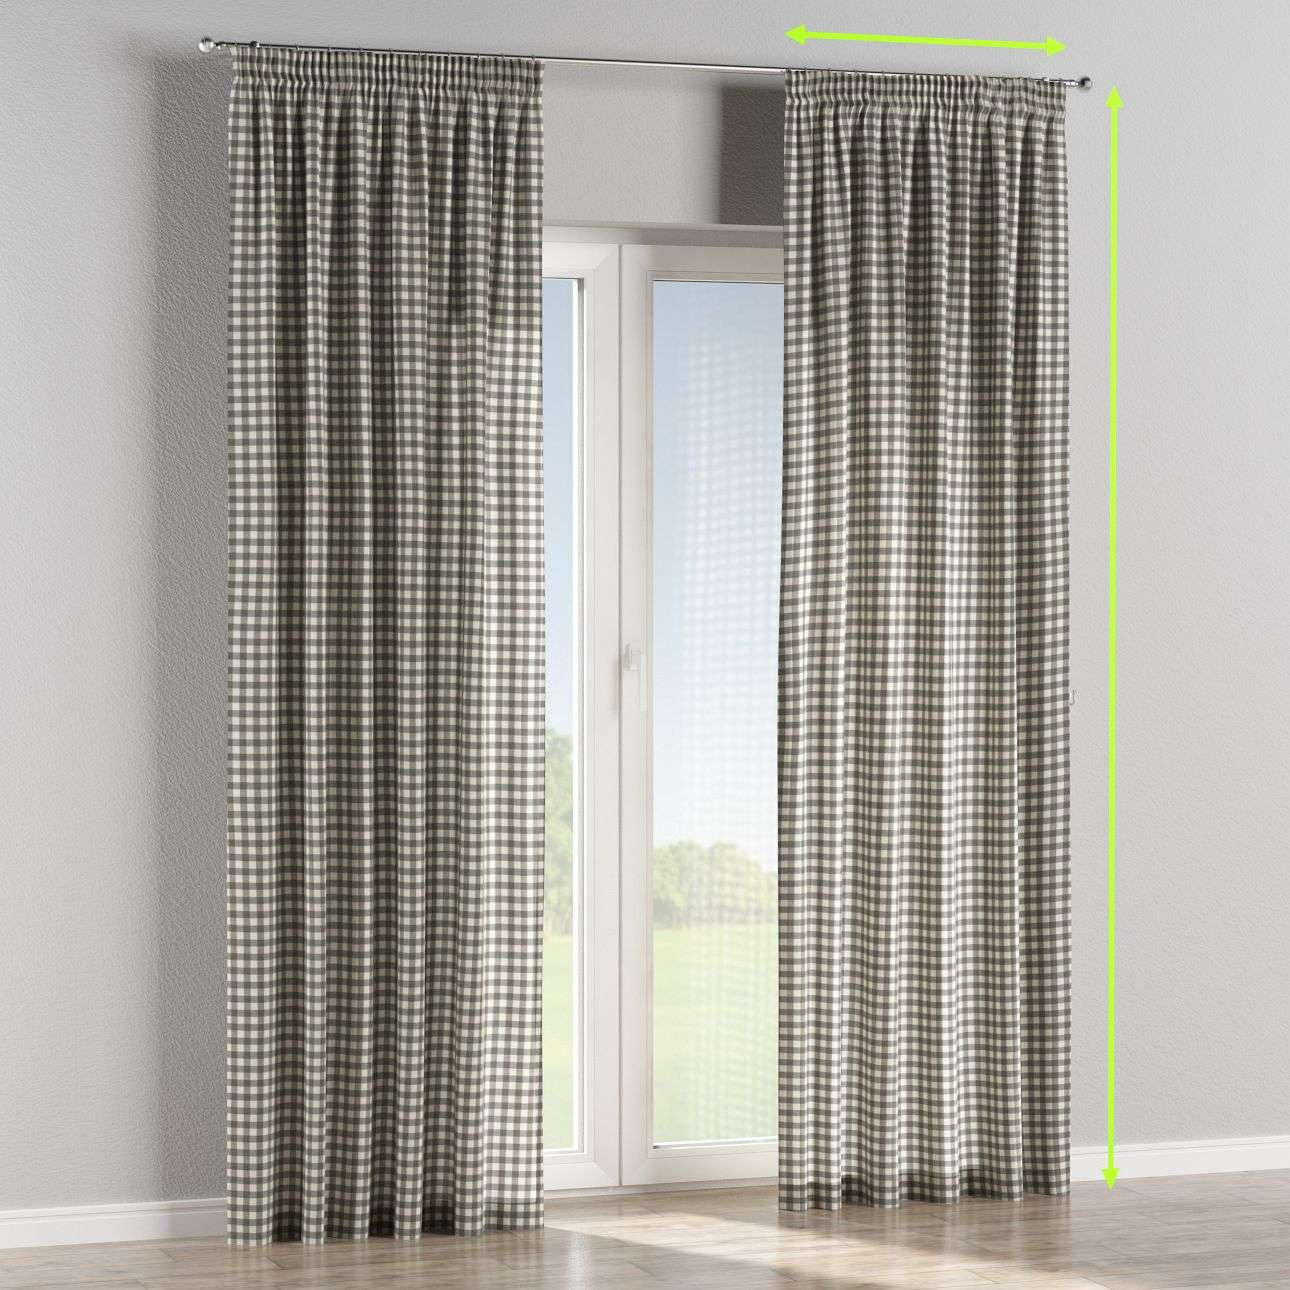 Pencil pleat lined curtains in collection Quadro, fabric: 136-11